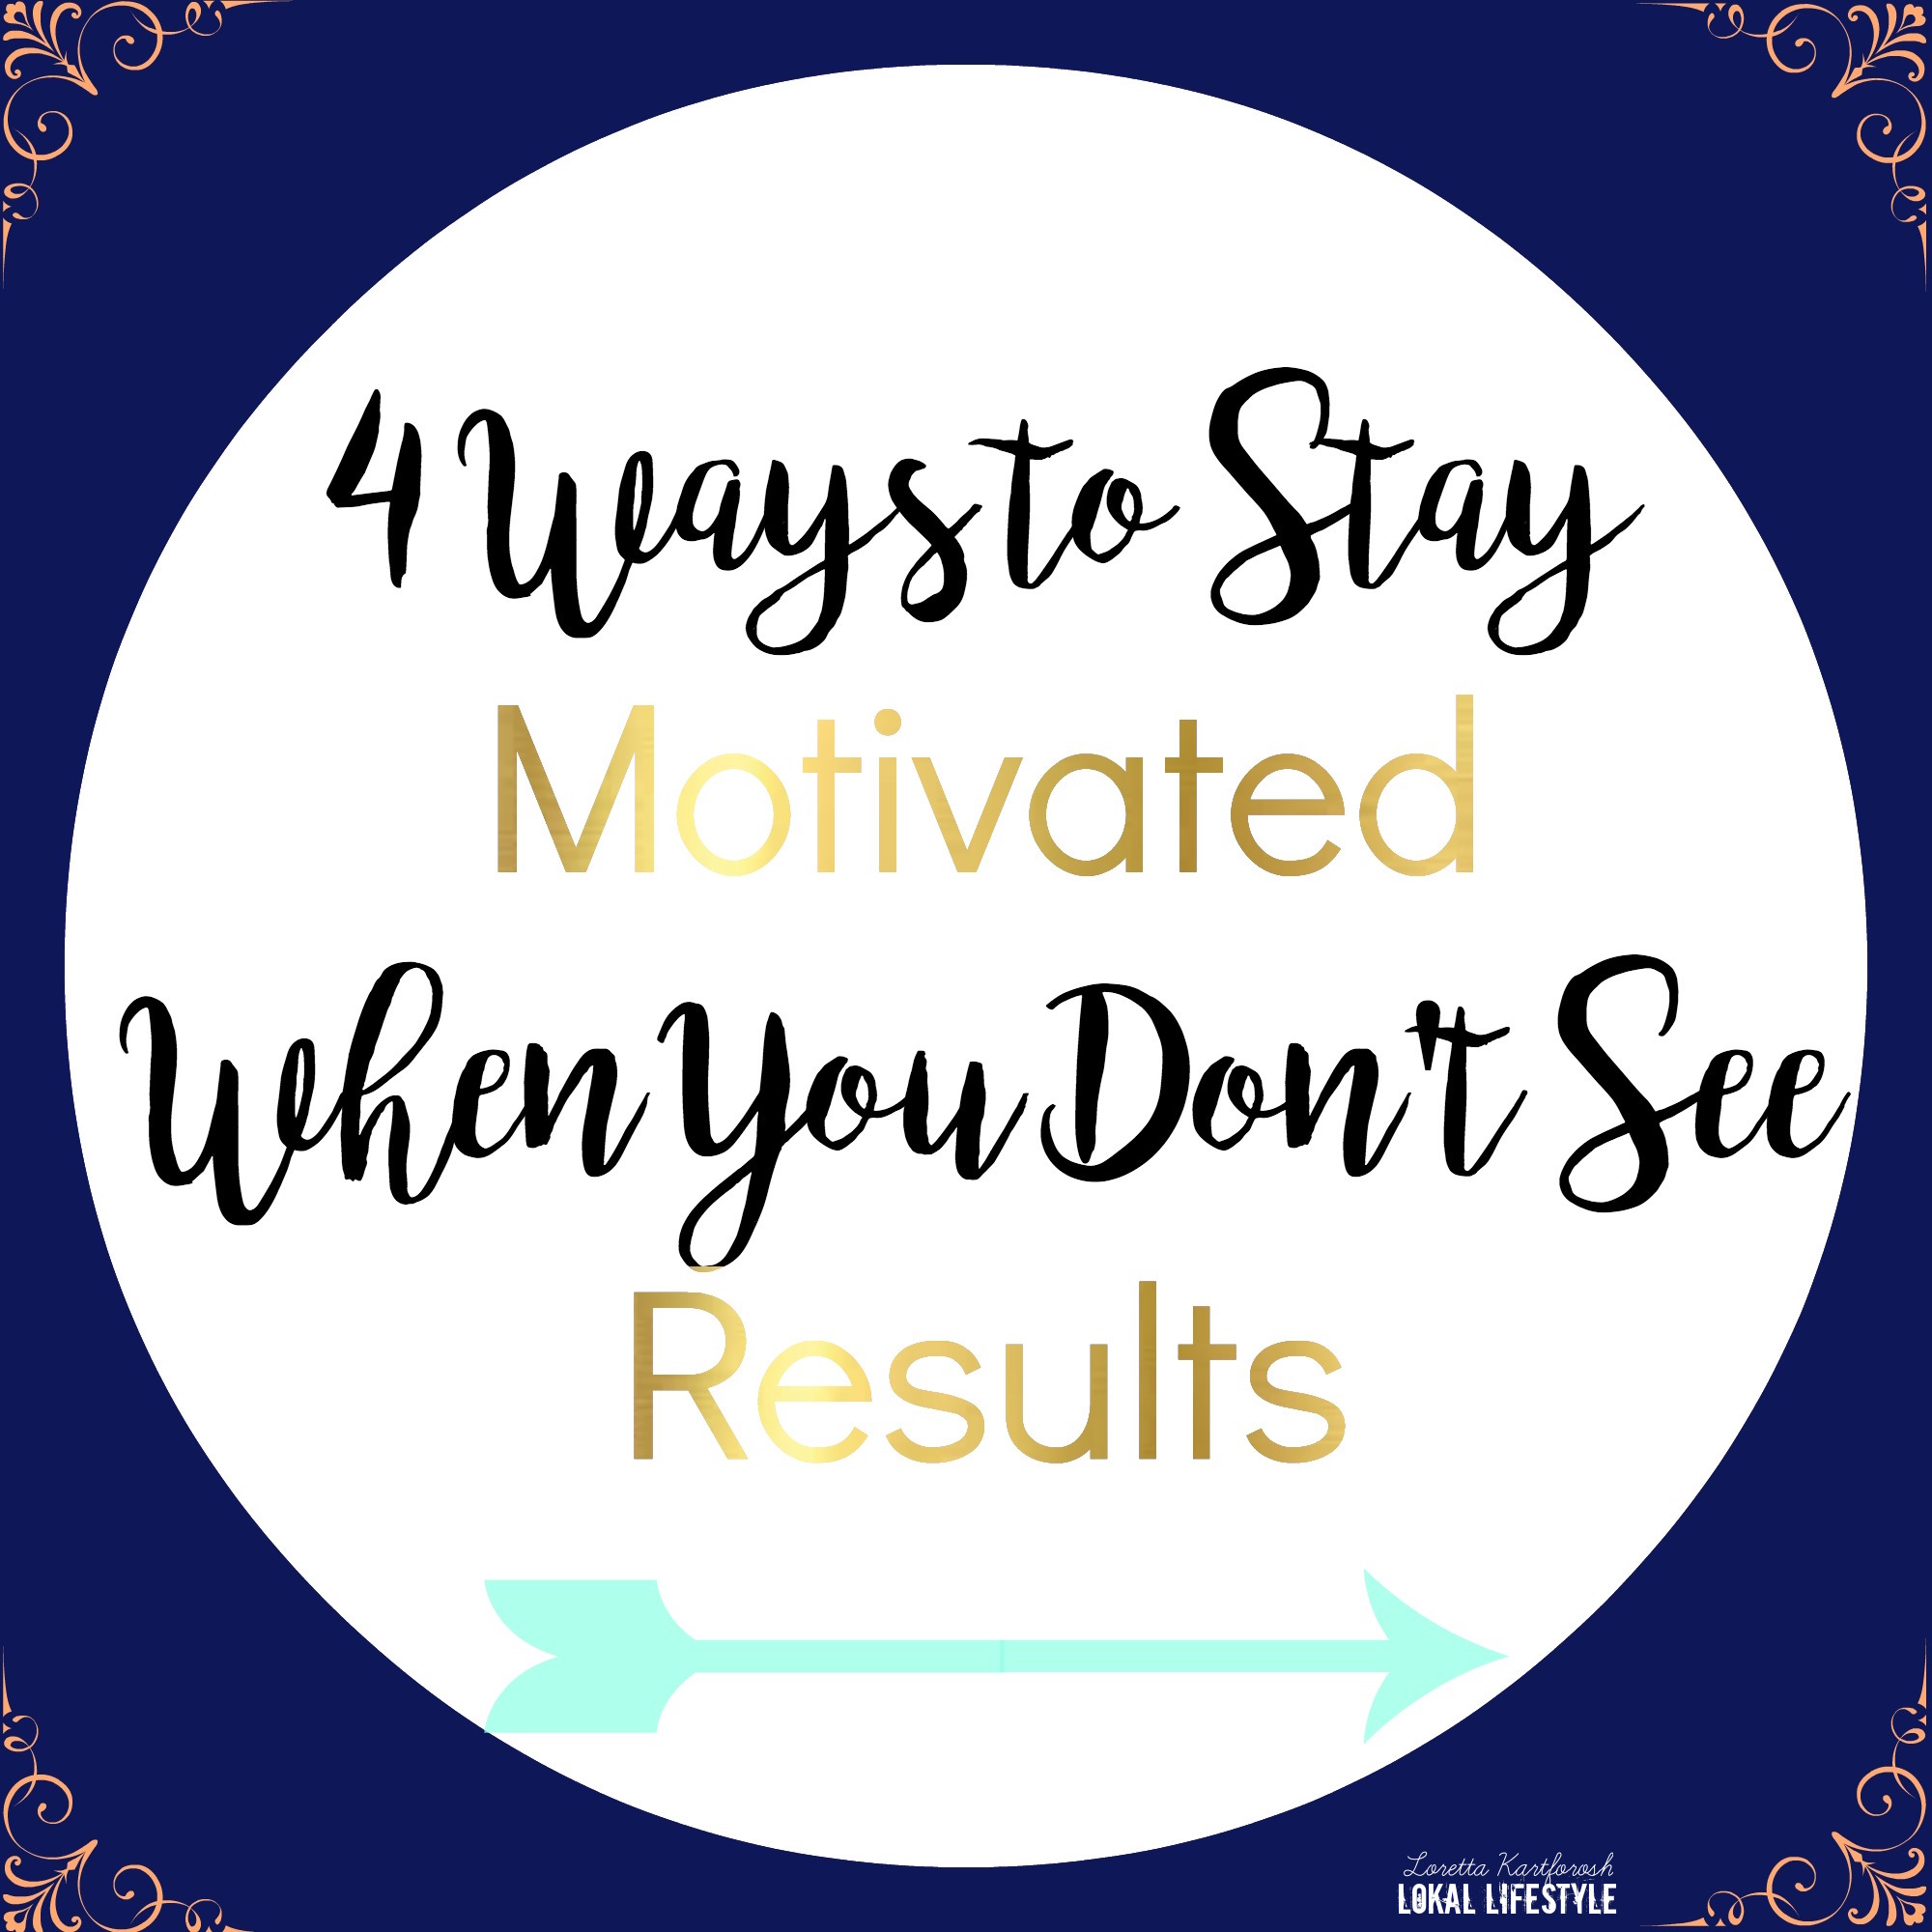 4 Ways to Stay Motivated When You Don't See Results